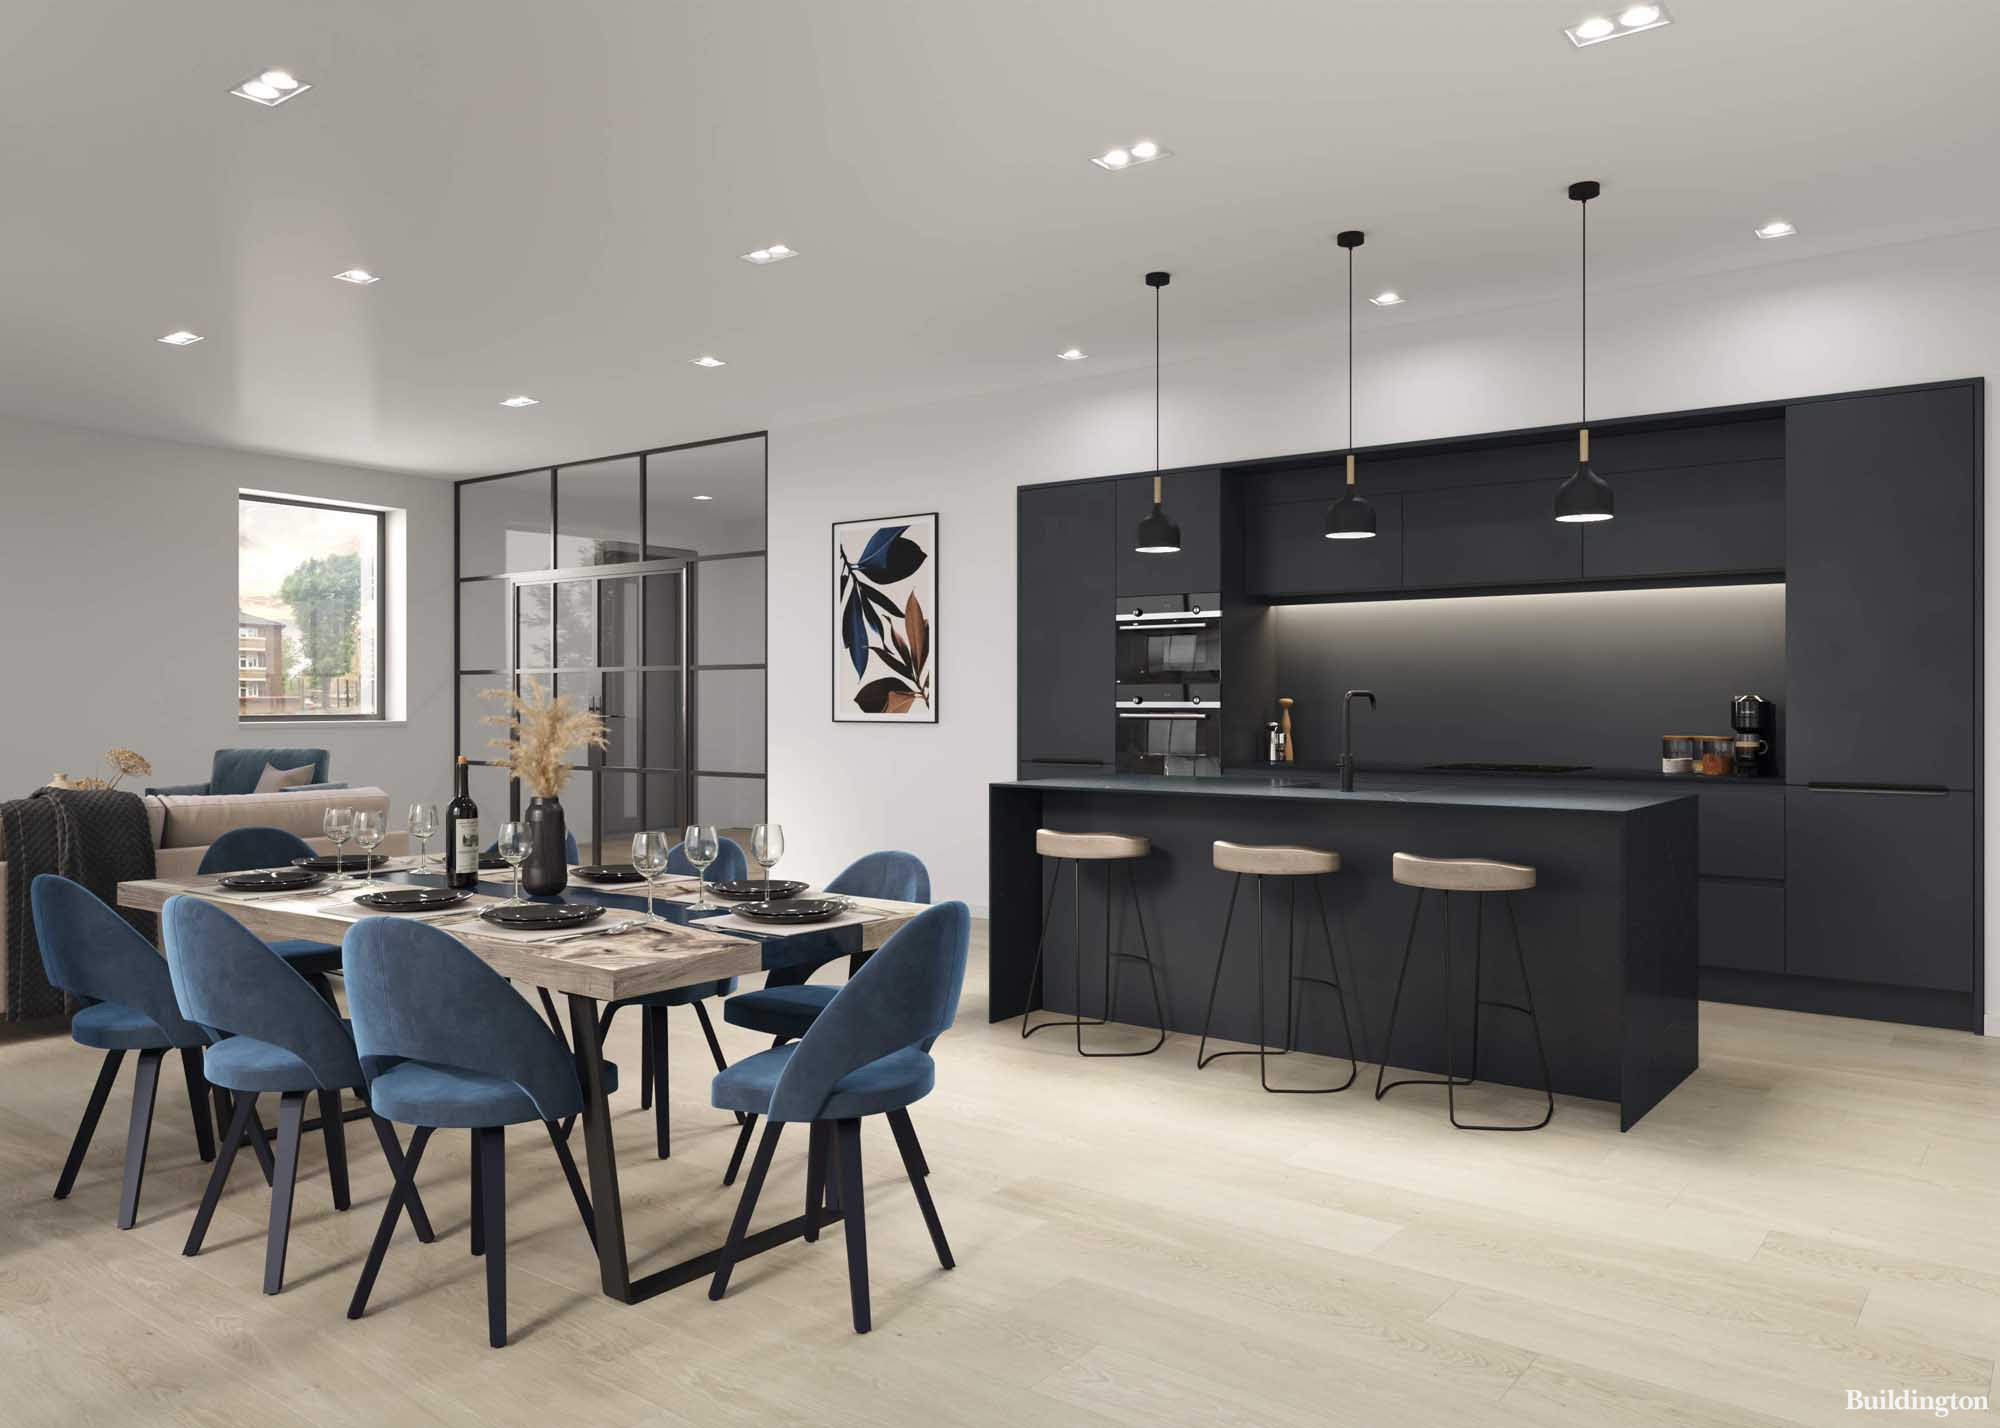 CGI of the open plan living room with kitchen at the Bastion House development. 2021 Goldrose Sharpe